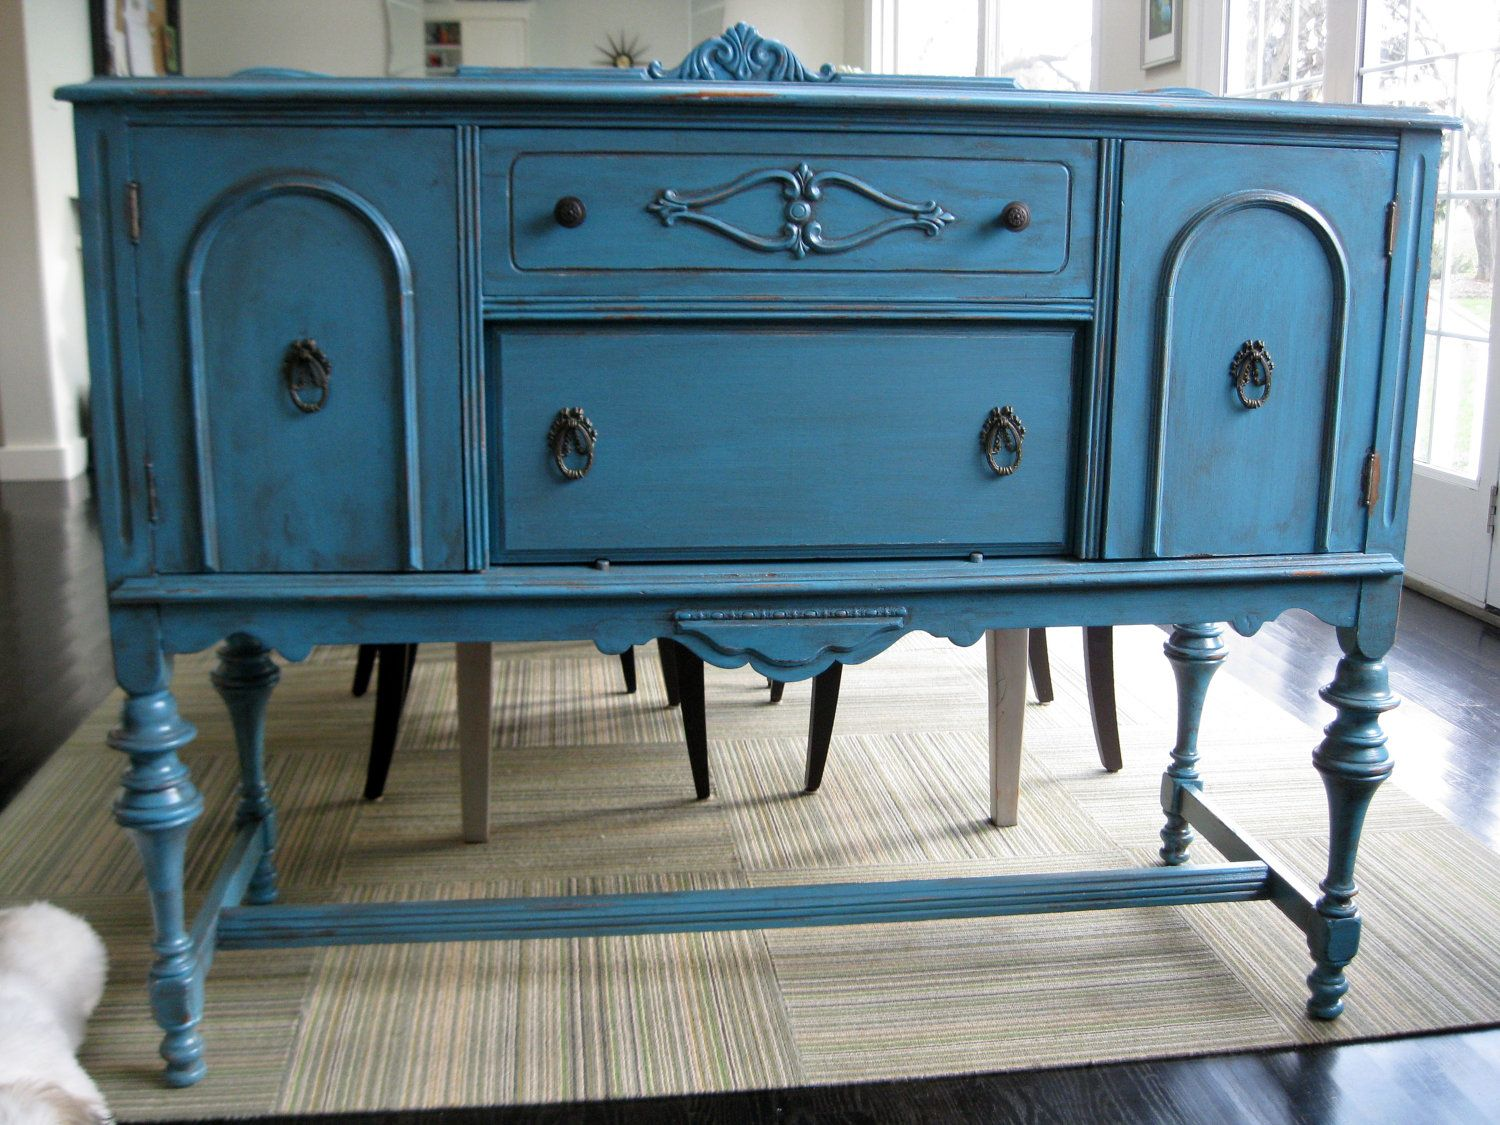 Antique Sideboard Server Buffet Teal Blue. Antique Sideboard Server Buffet Teal Blue   For the Home